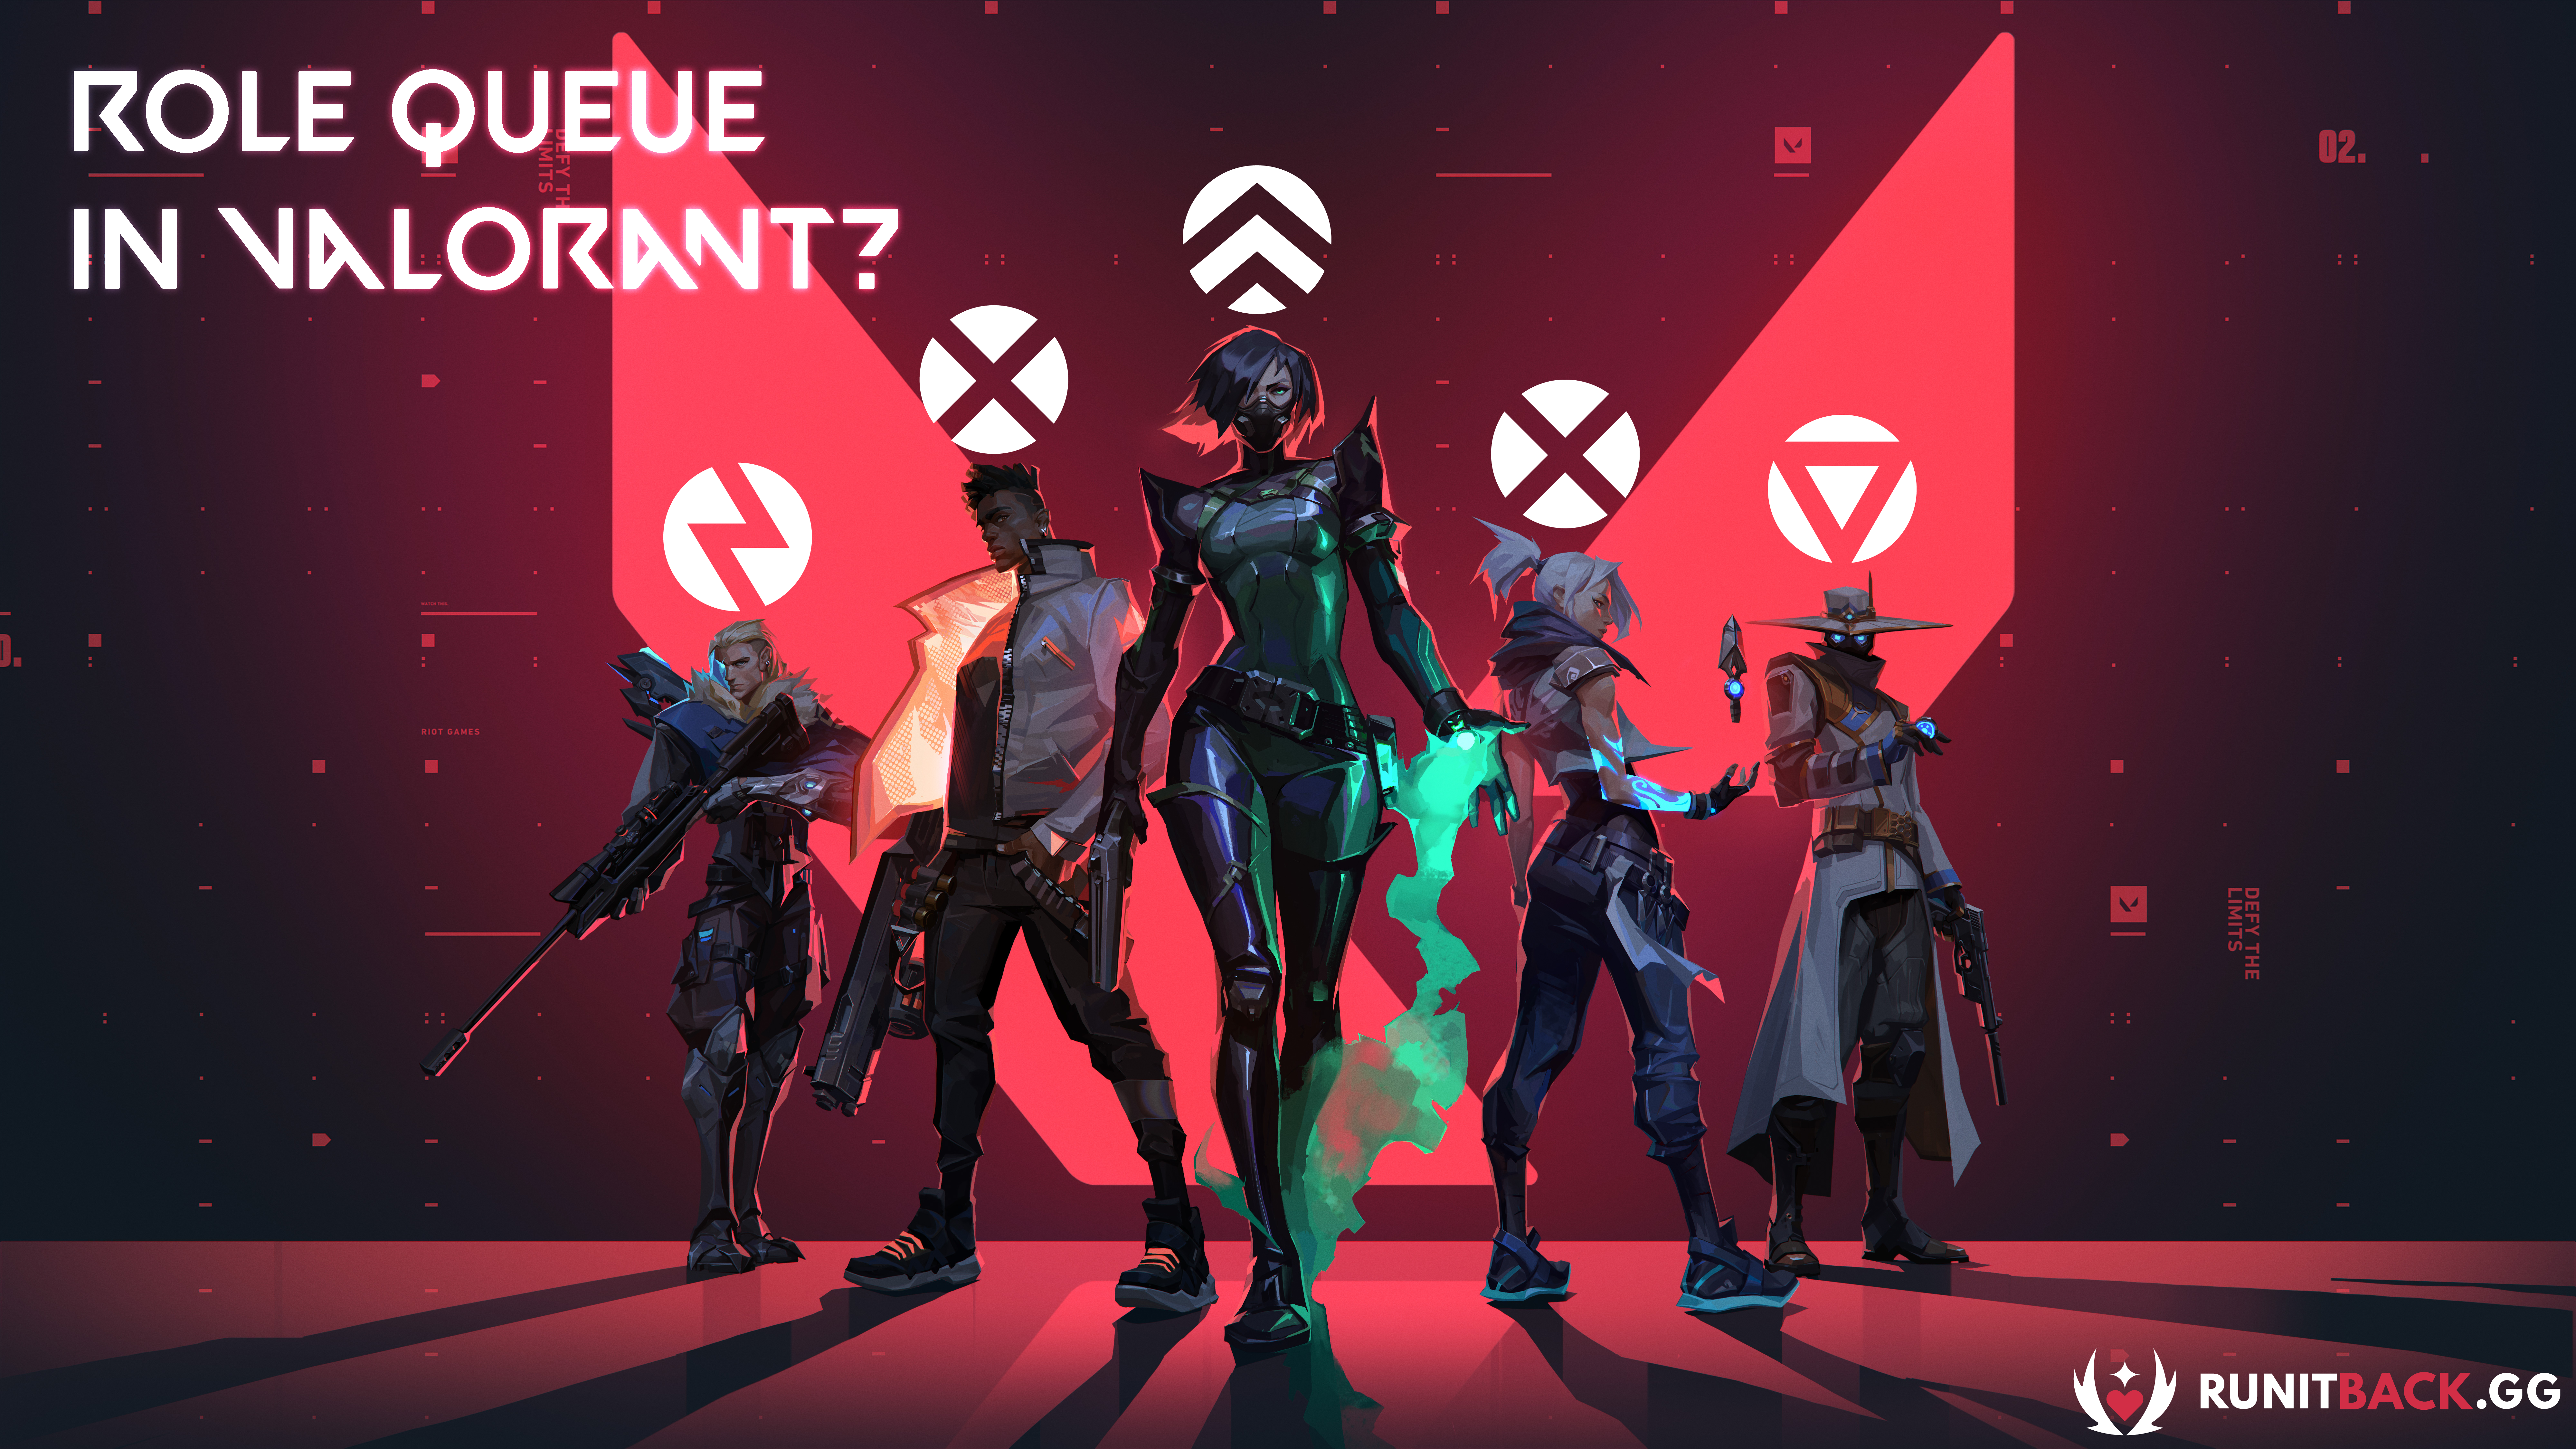 Role Queue in Valorant: Useful or not?